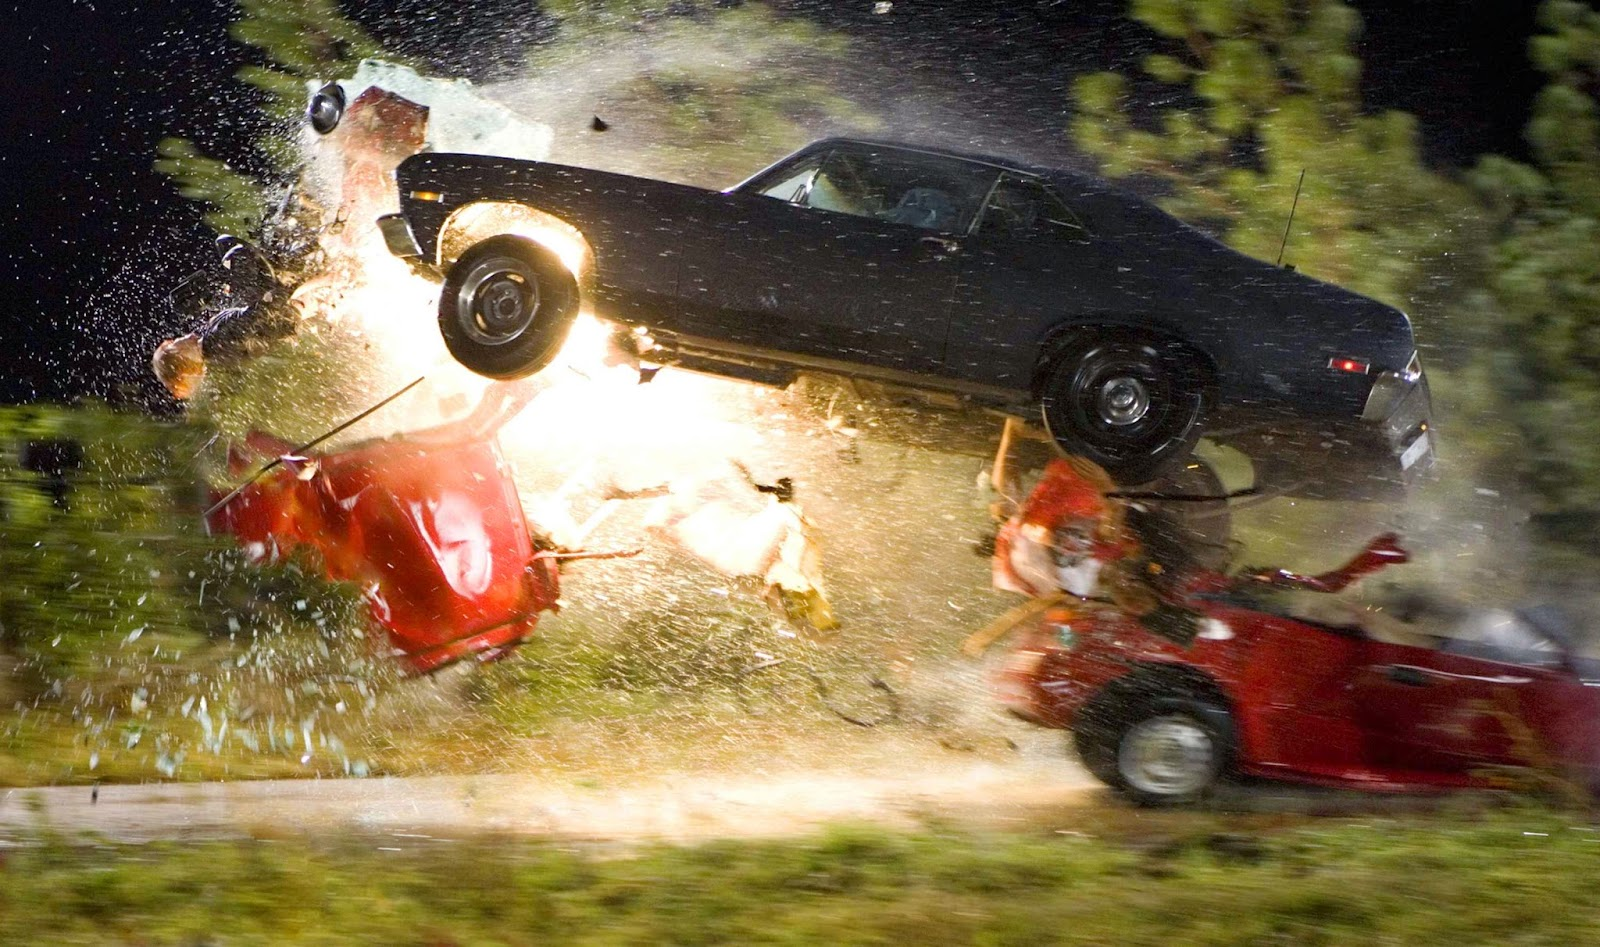 Crash in Deathproof